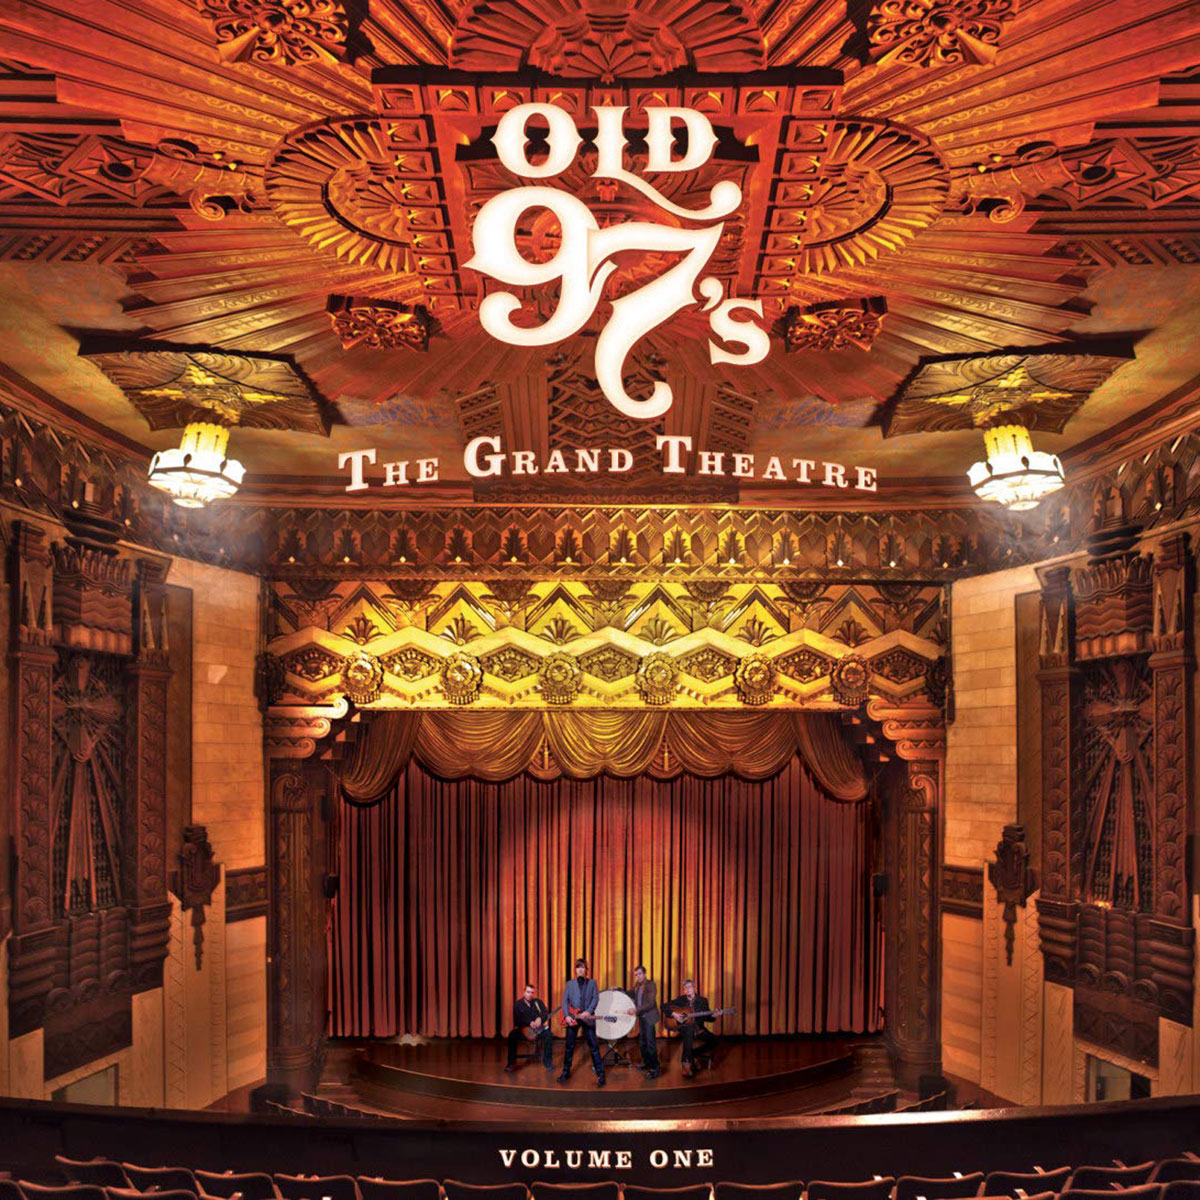 Old 97's, The Grand Theatre Volume One